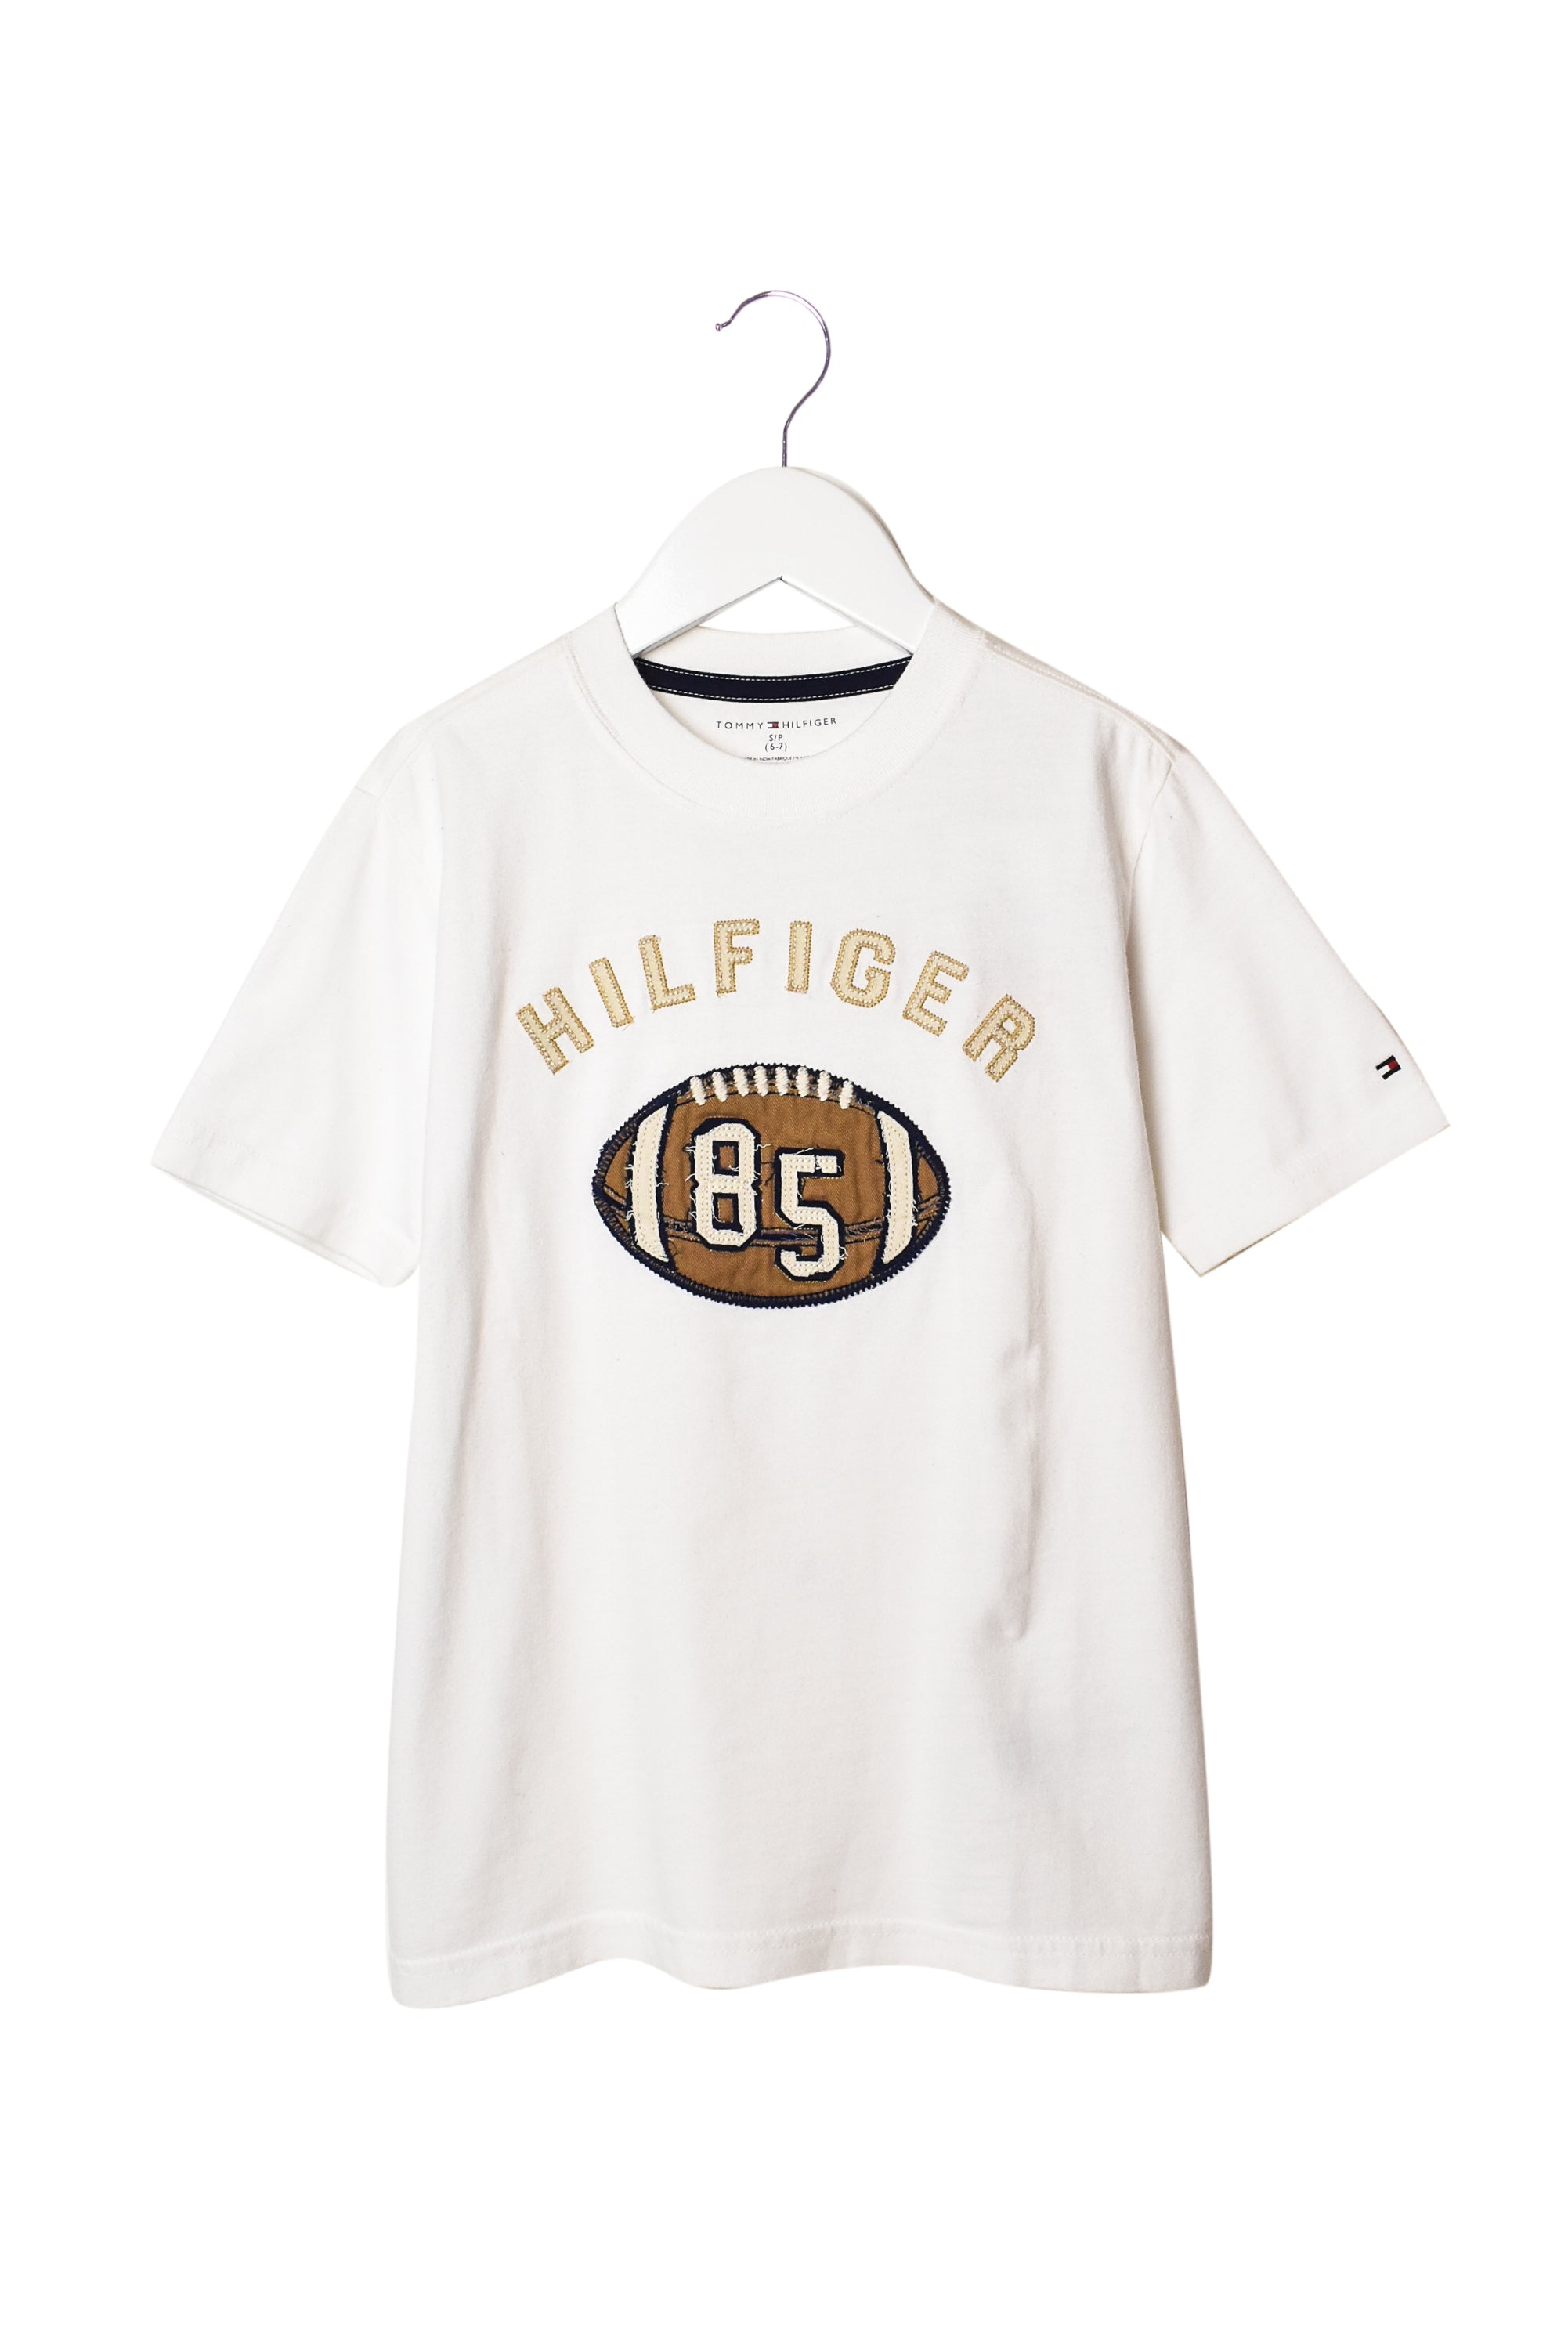 10008407 Tommy Hilfiger Kids ~ T-Shirt 6-7 at Retykle